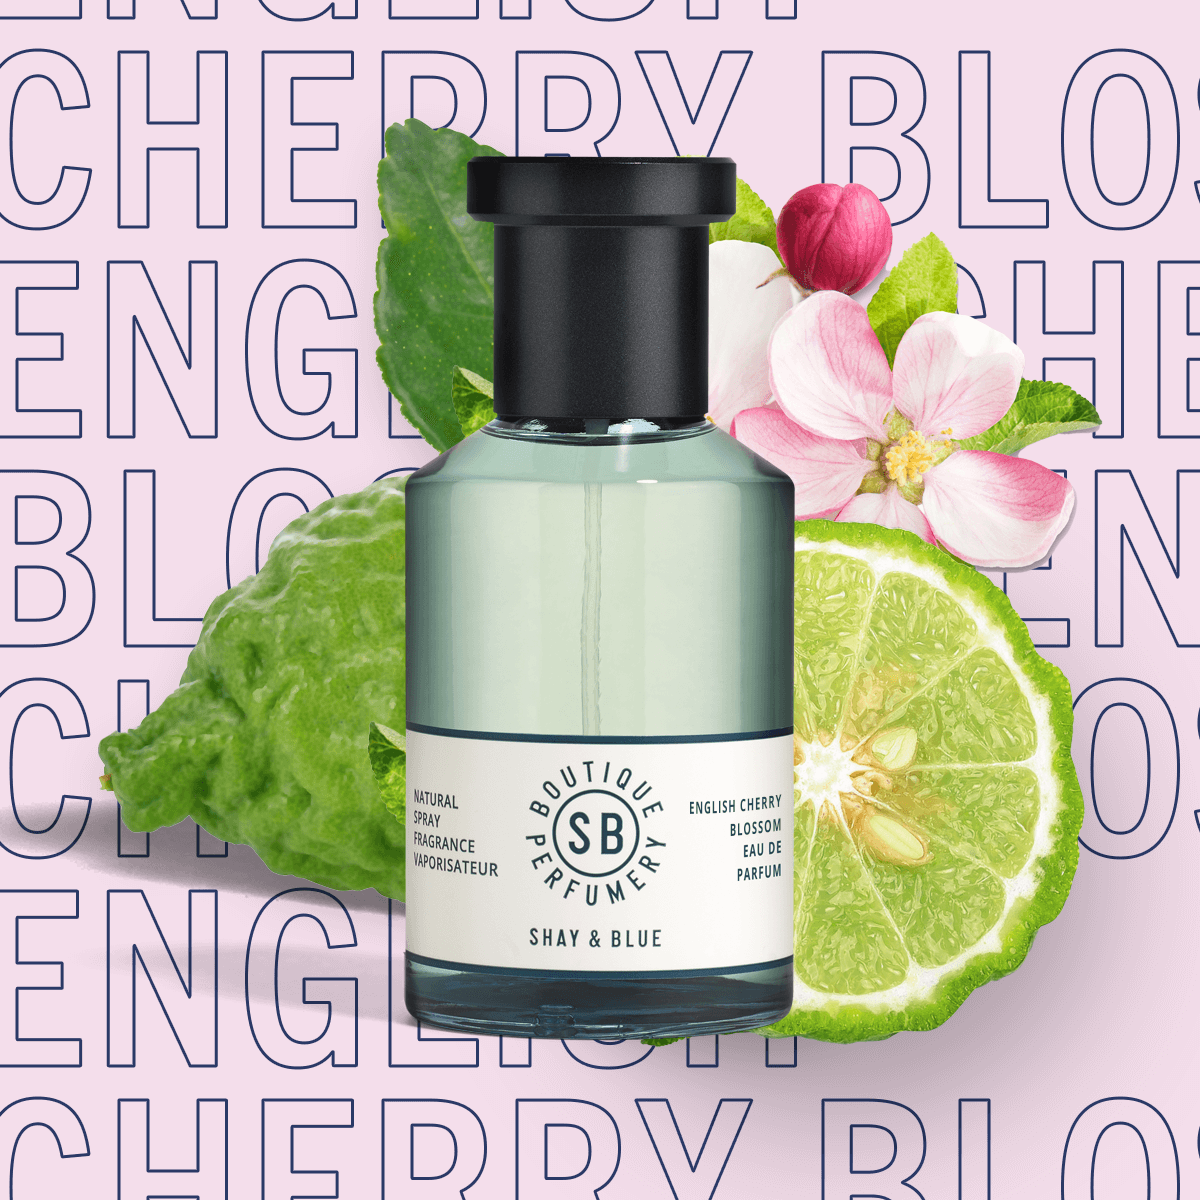 English Cherry Blossom Fragrance 100ml | Airy blossom with black cherries, fig and bergamot for a sparkling citrus lift. | Clean All Gender Fragrance | Shay & Blue